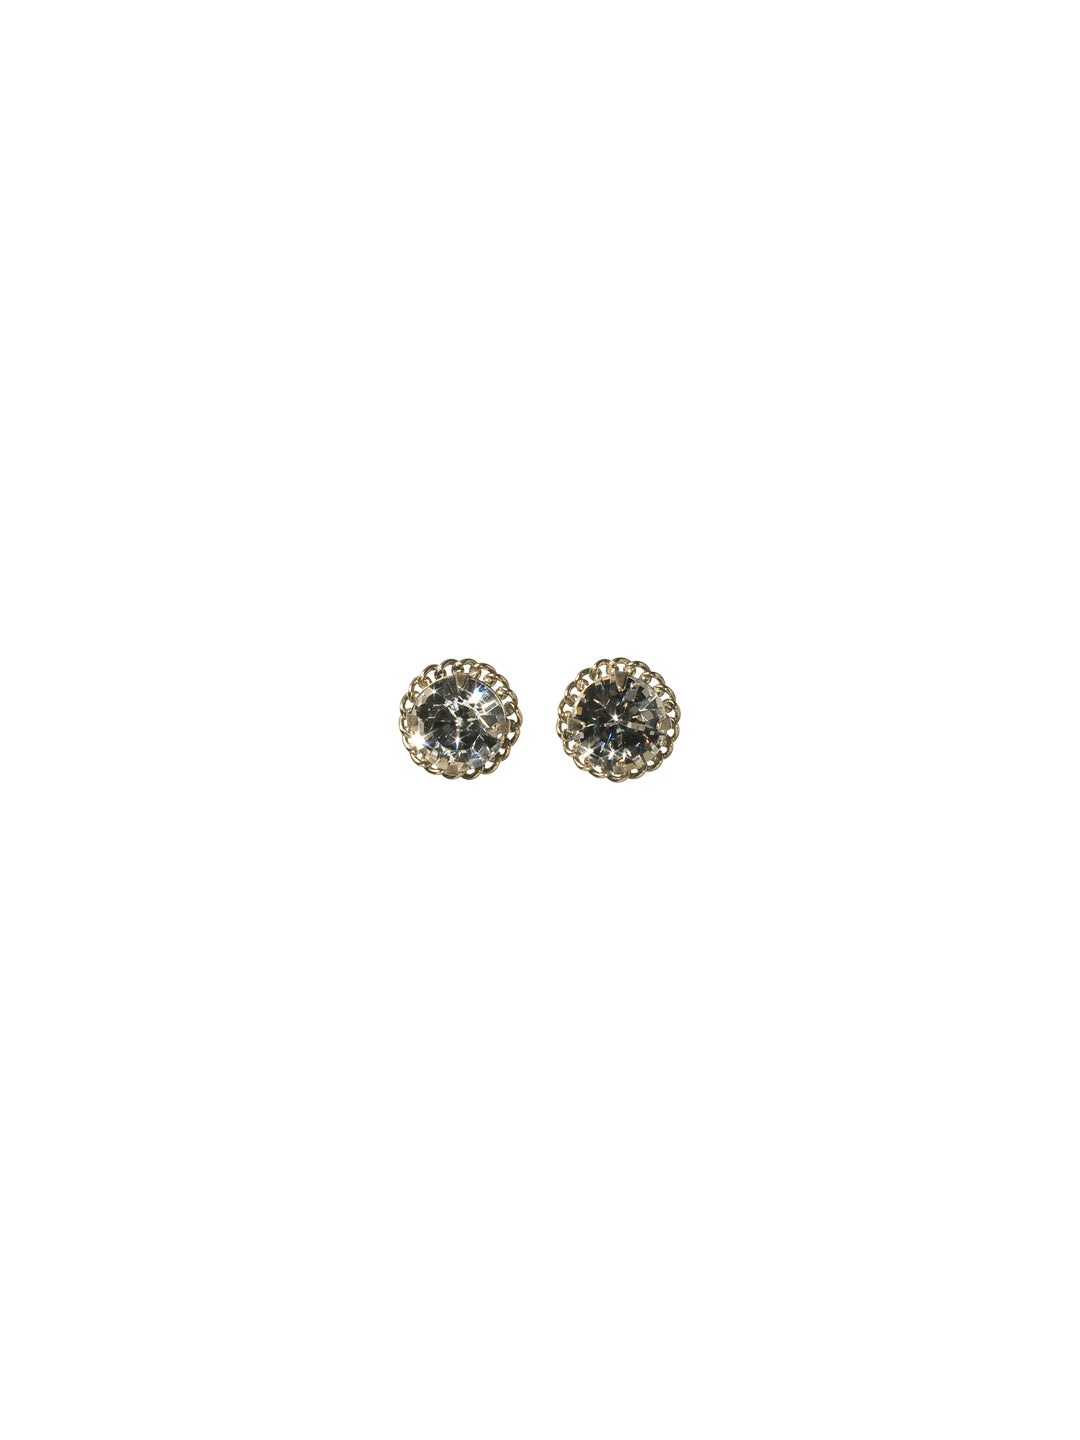 Perfection on a Post Stud Earrings - ECN1ASSNB